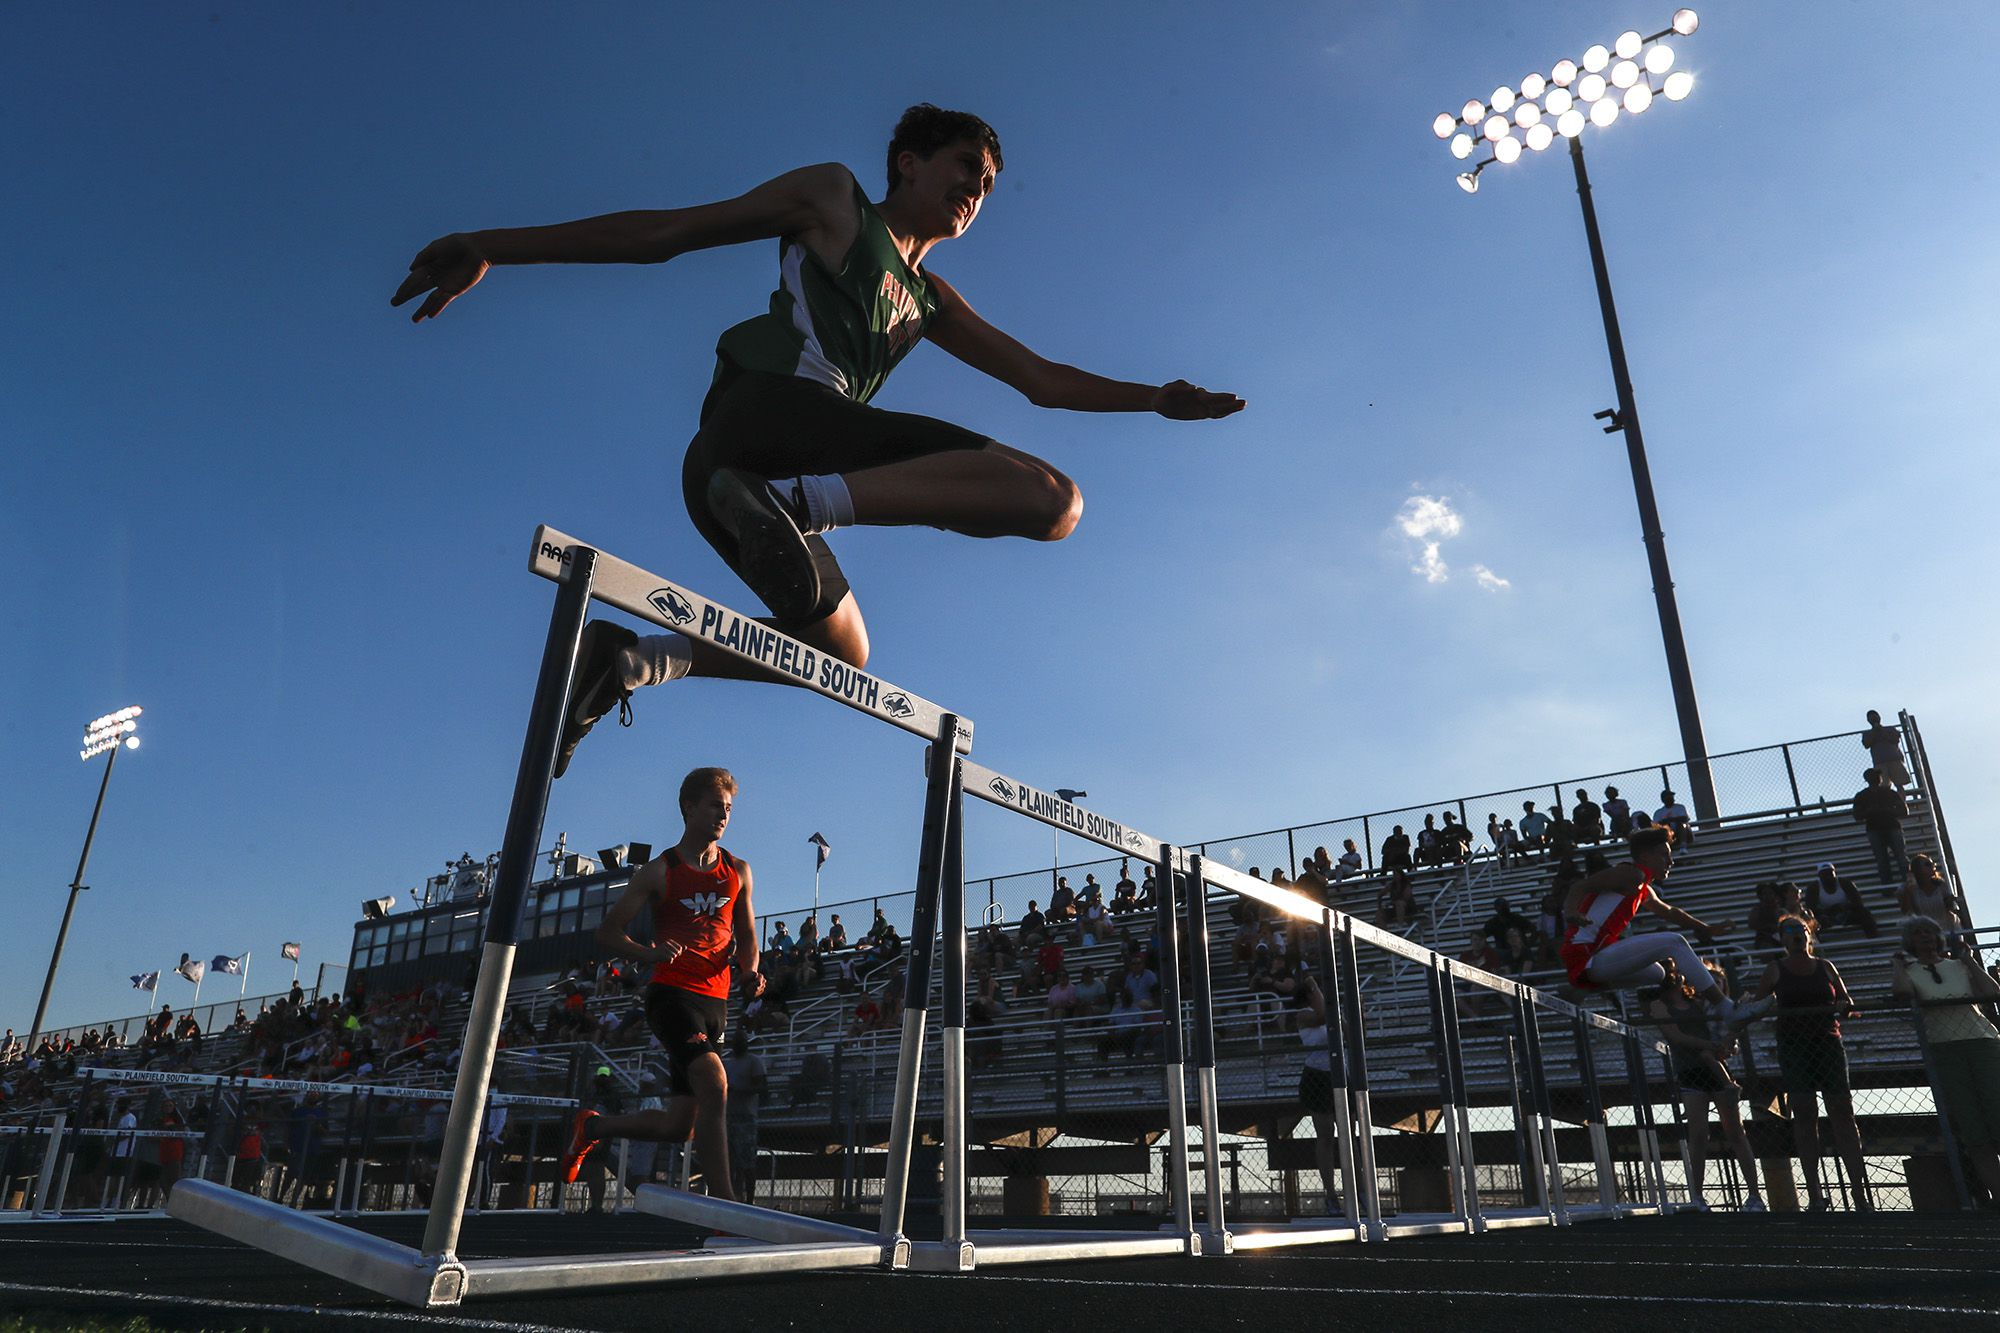 Plainfield East hurdler Dylen Callozzo clears the final hurdle on Saturday, June 5, 2021, at Plainfield South High School in Plainfield, Ill.